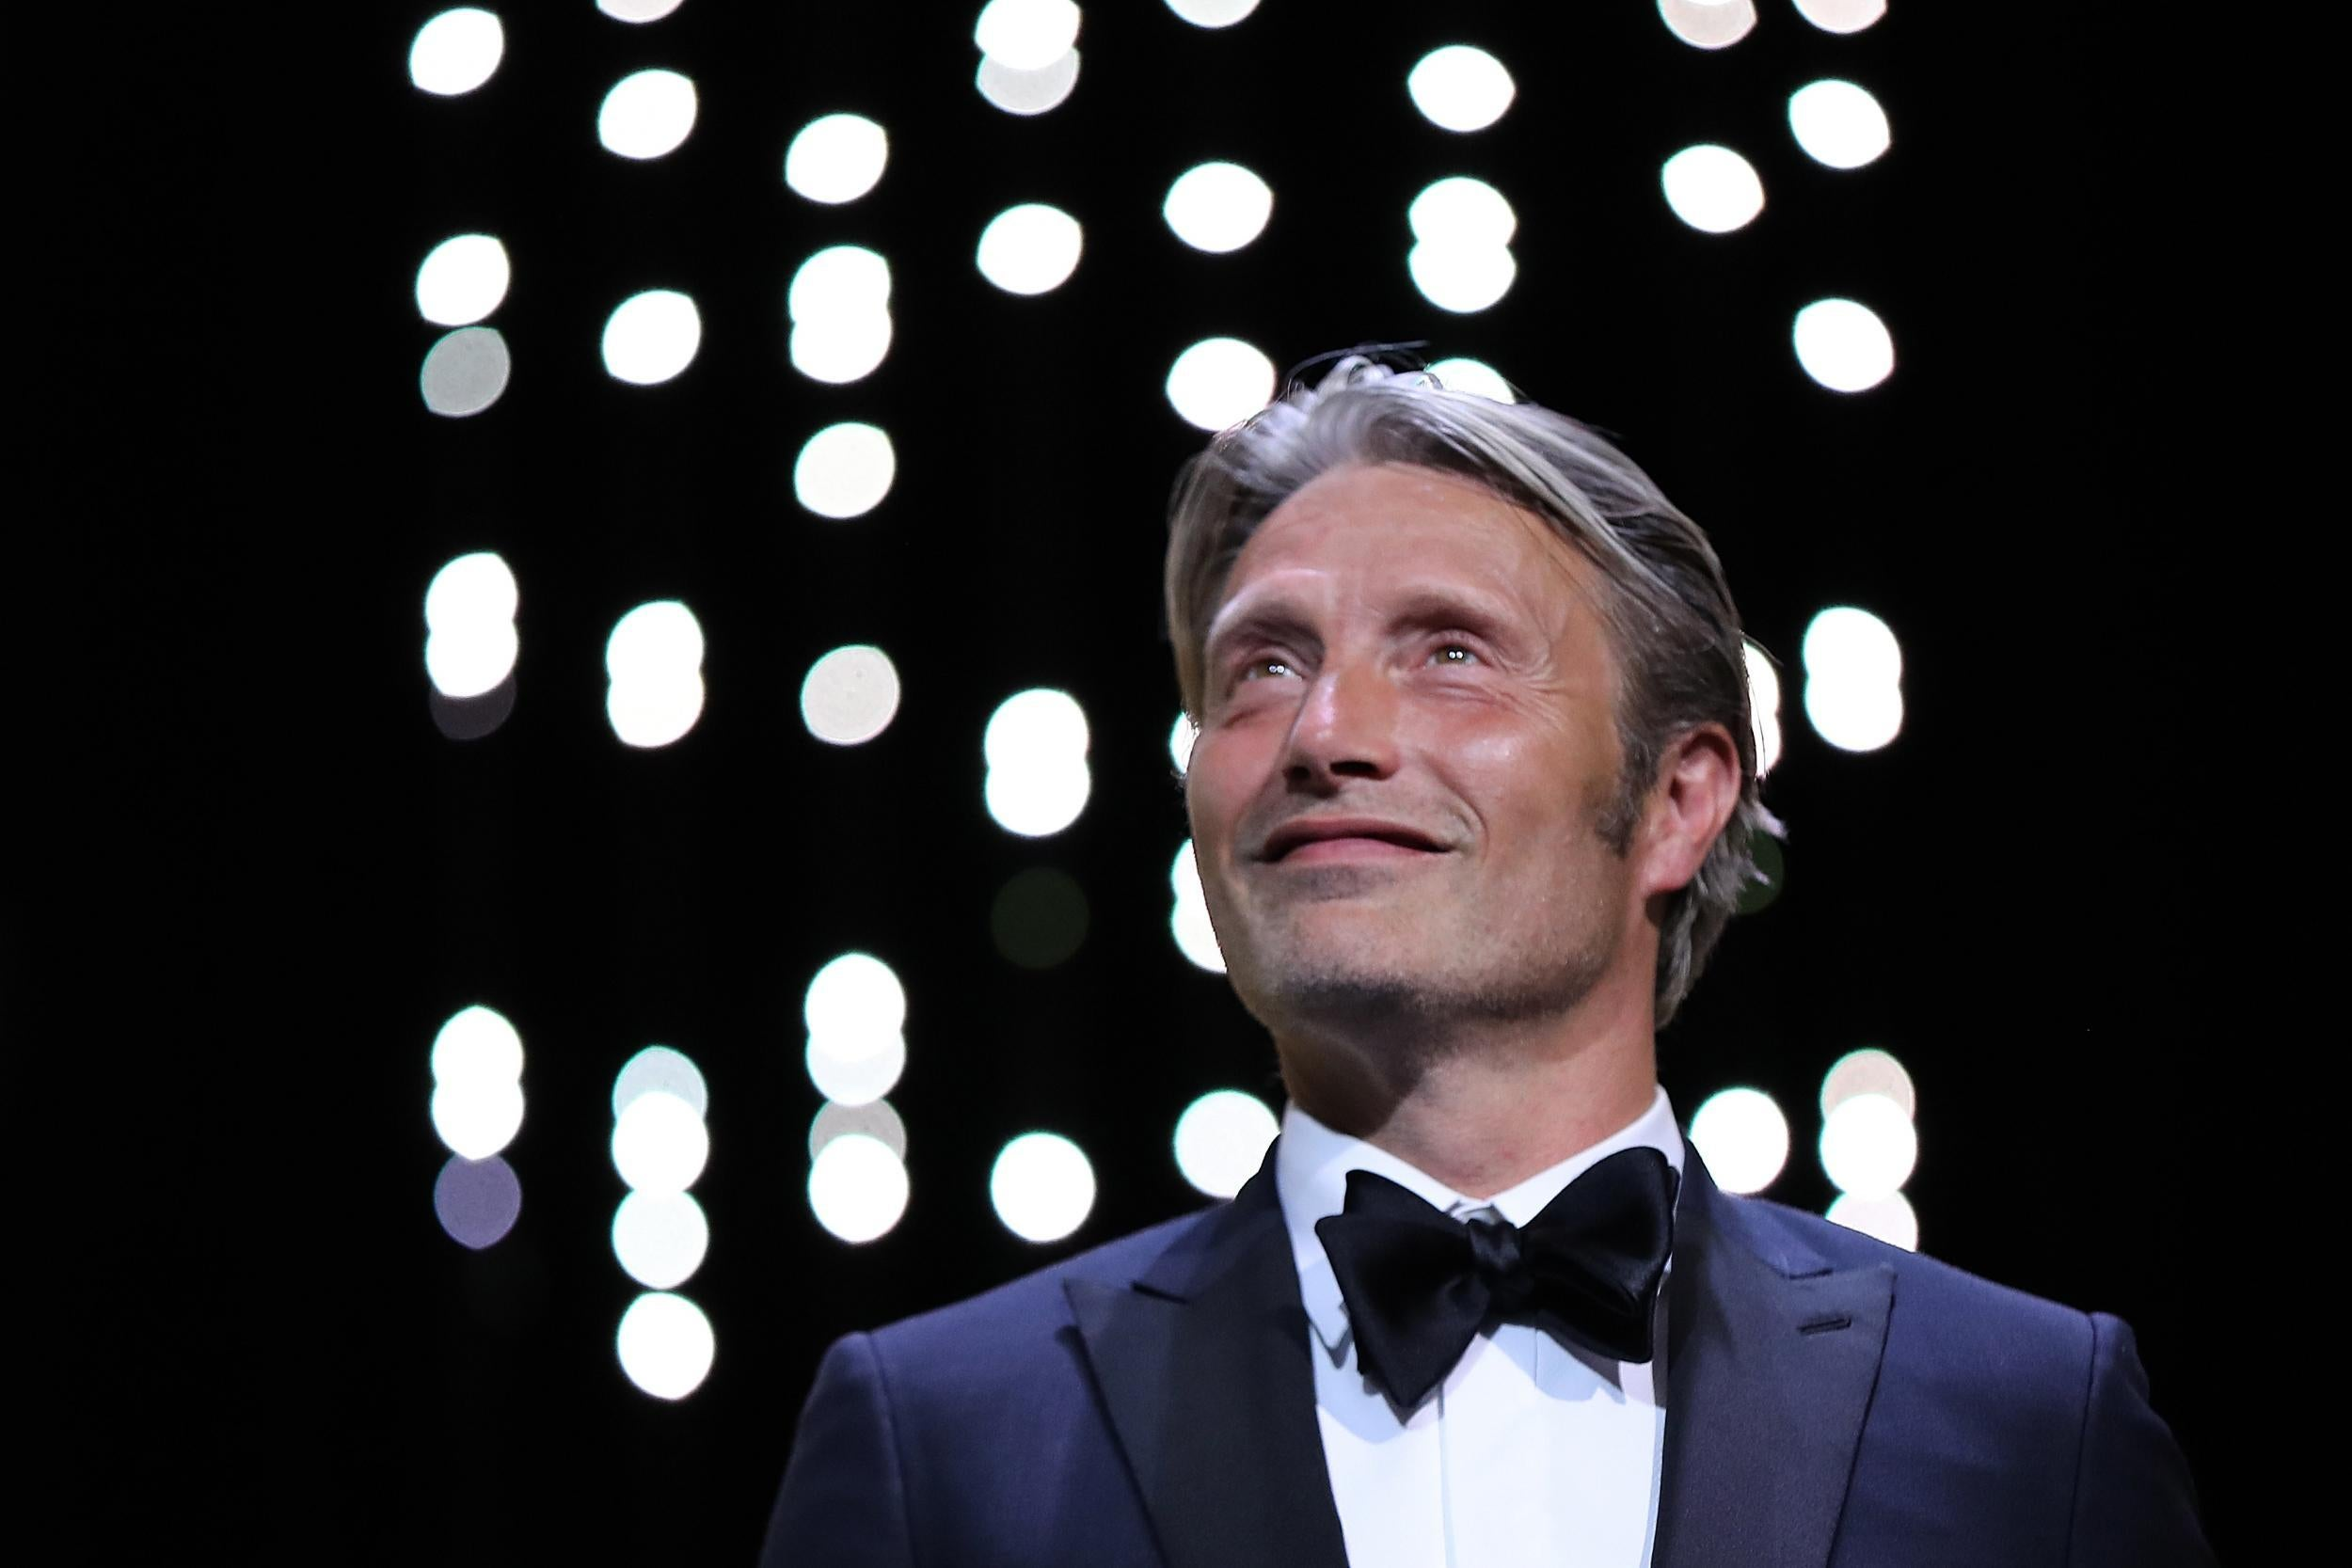 Star Wars Rogue One Reshoots: Mads Mikkelsen Weighs In On